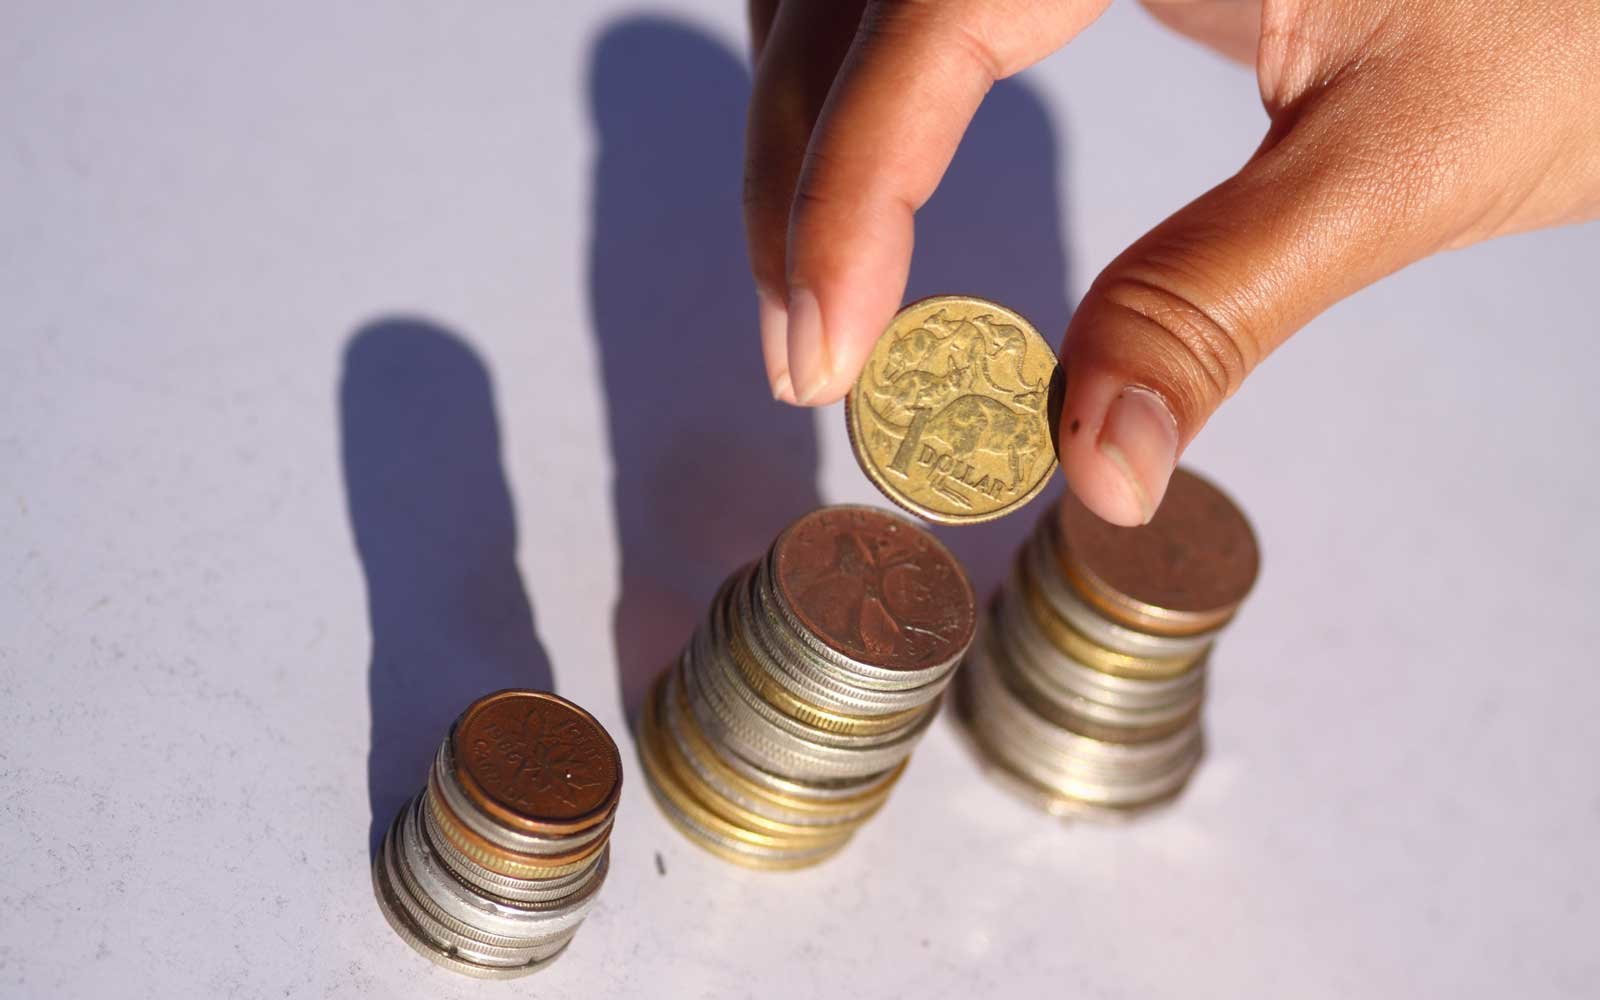 Placing coin on a pile of coins